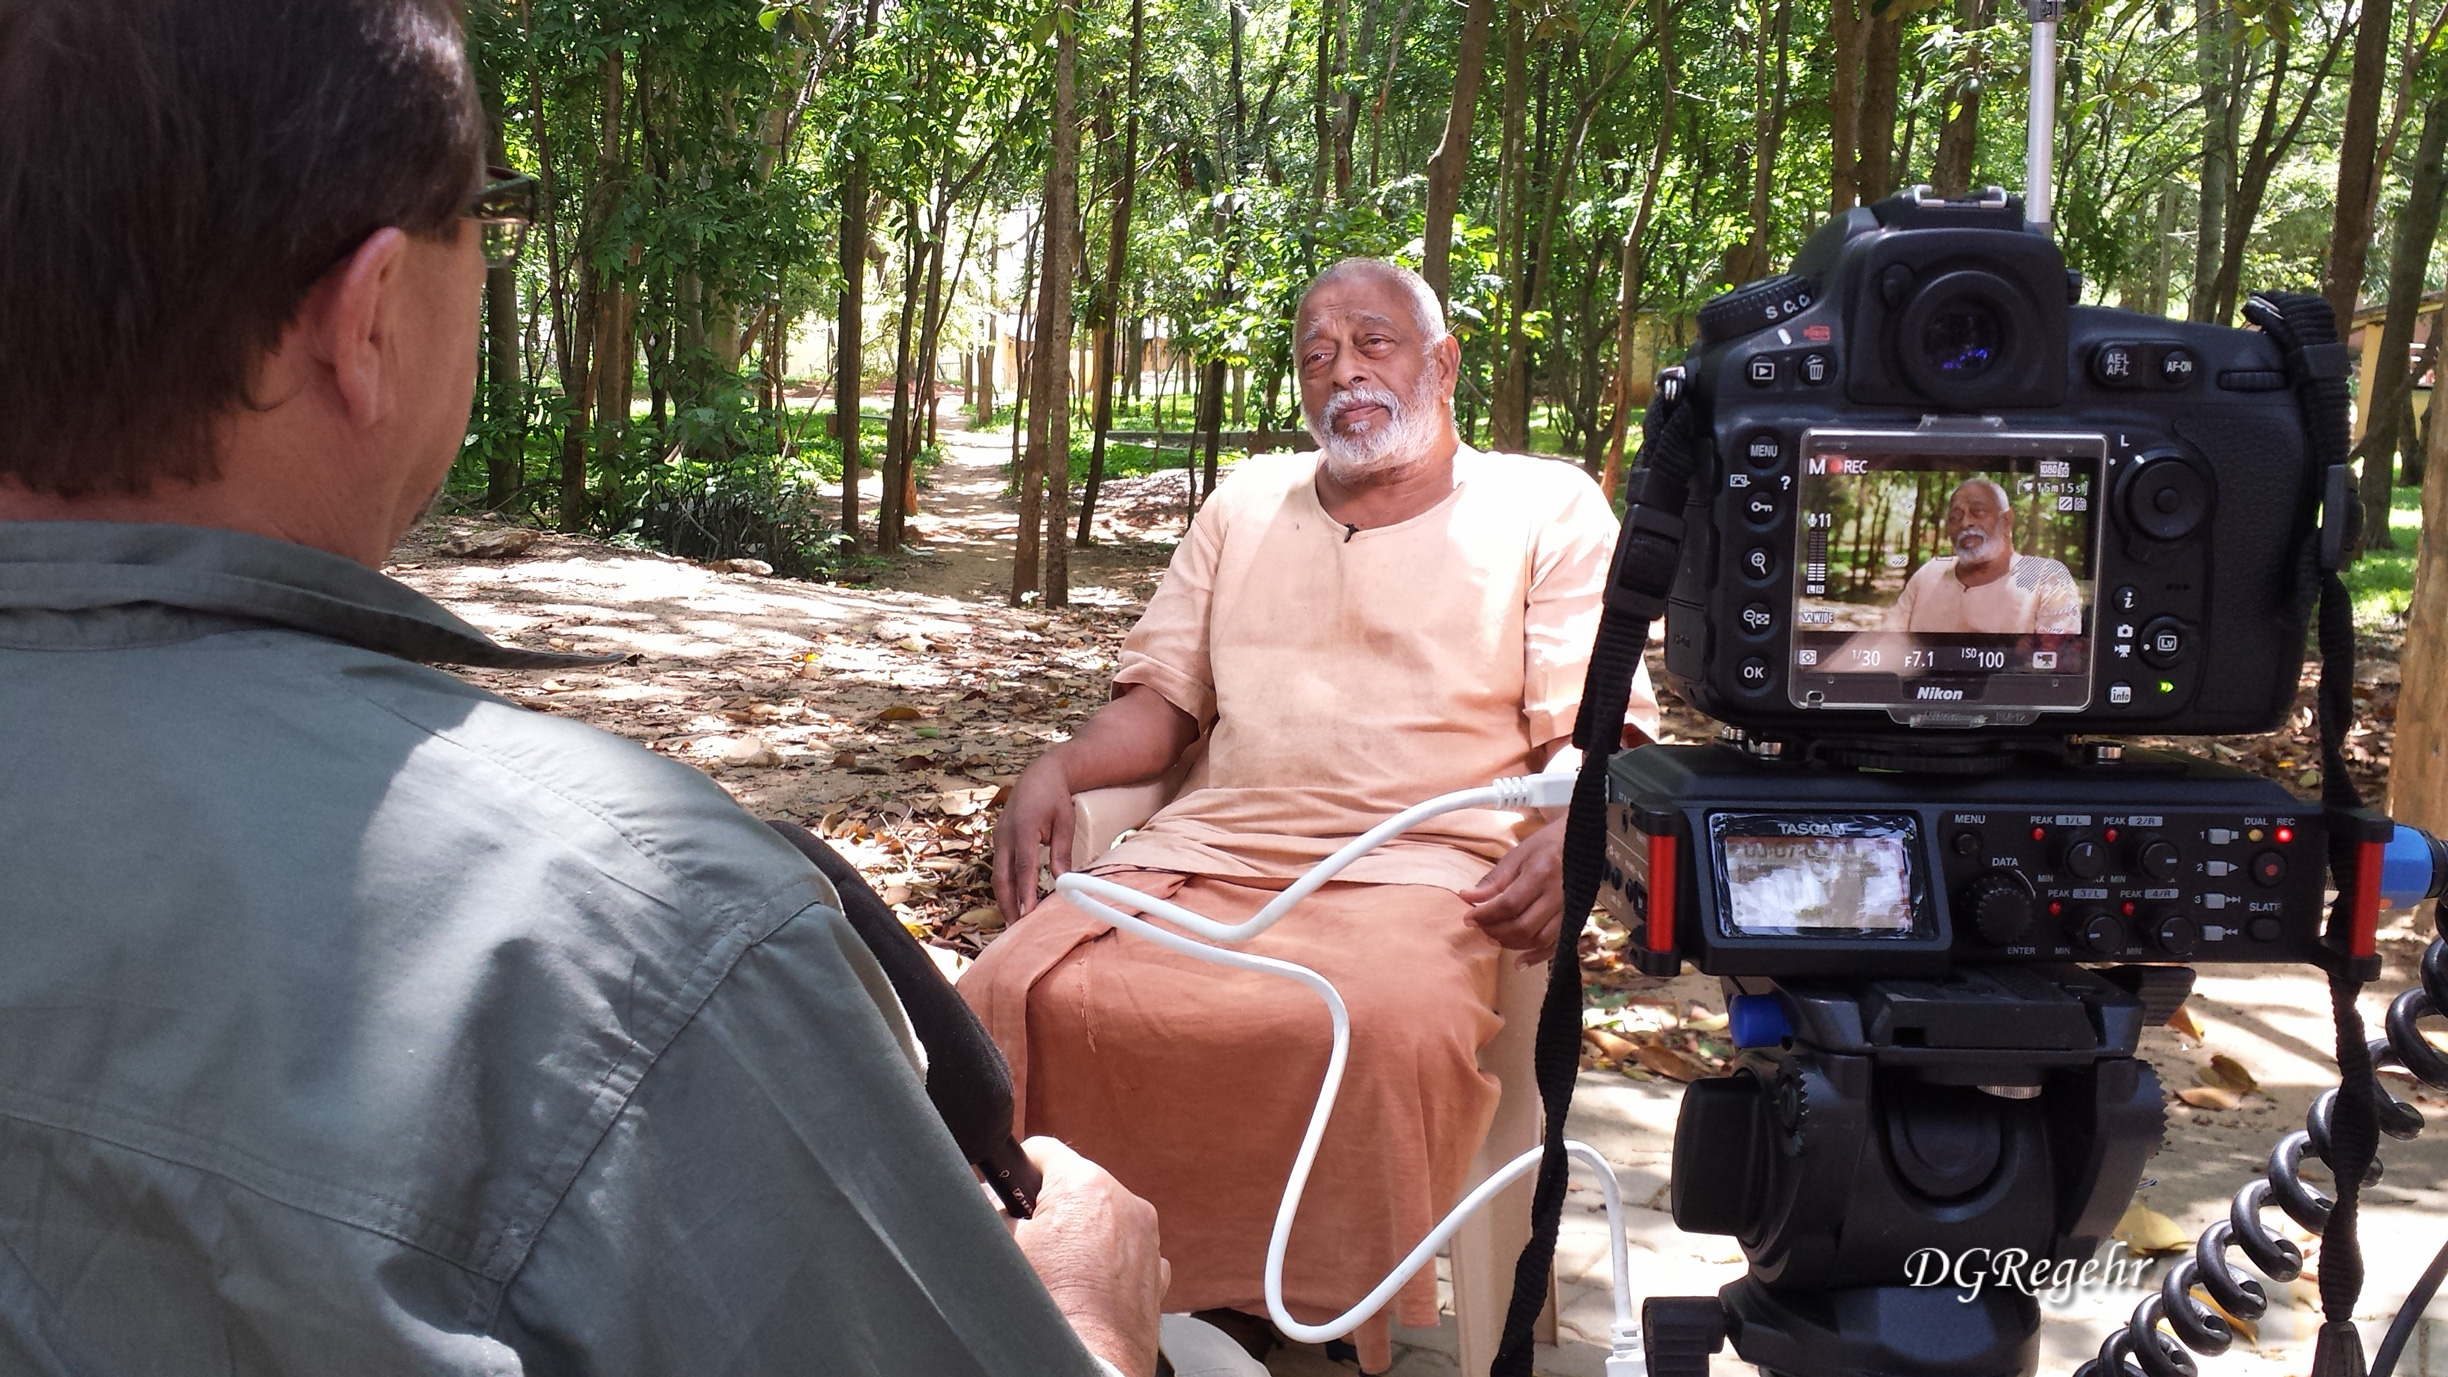 Interviewing a slow-speaking Swami with the humidity zapping your battery power (image: supplied),